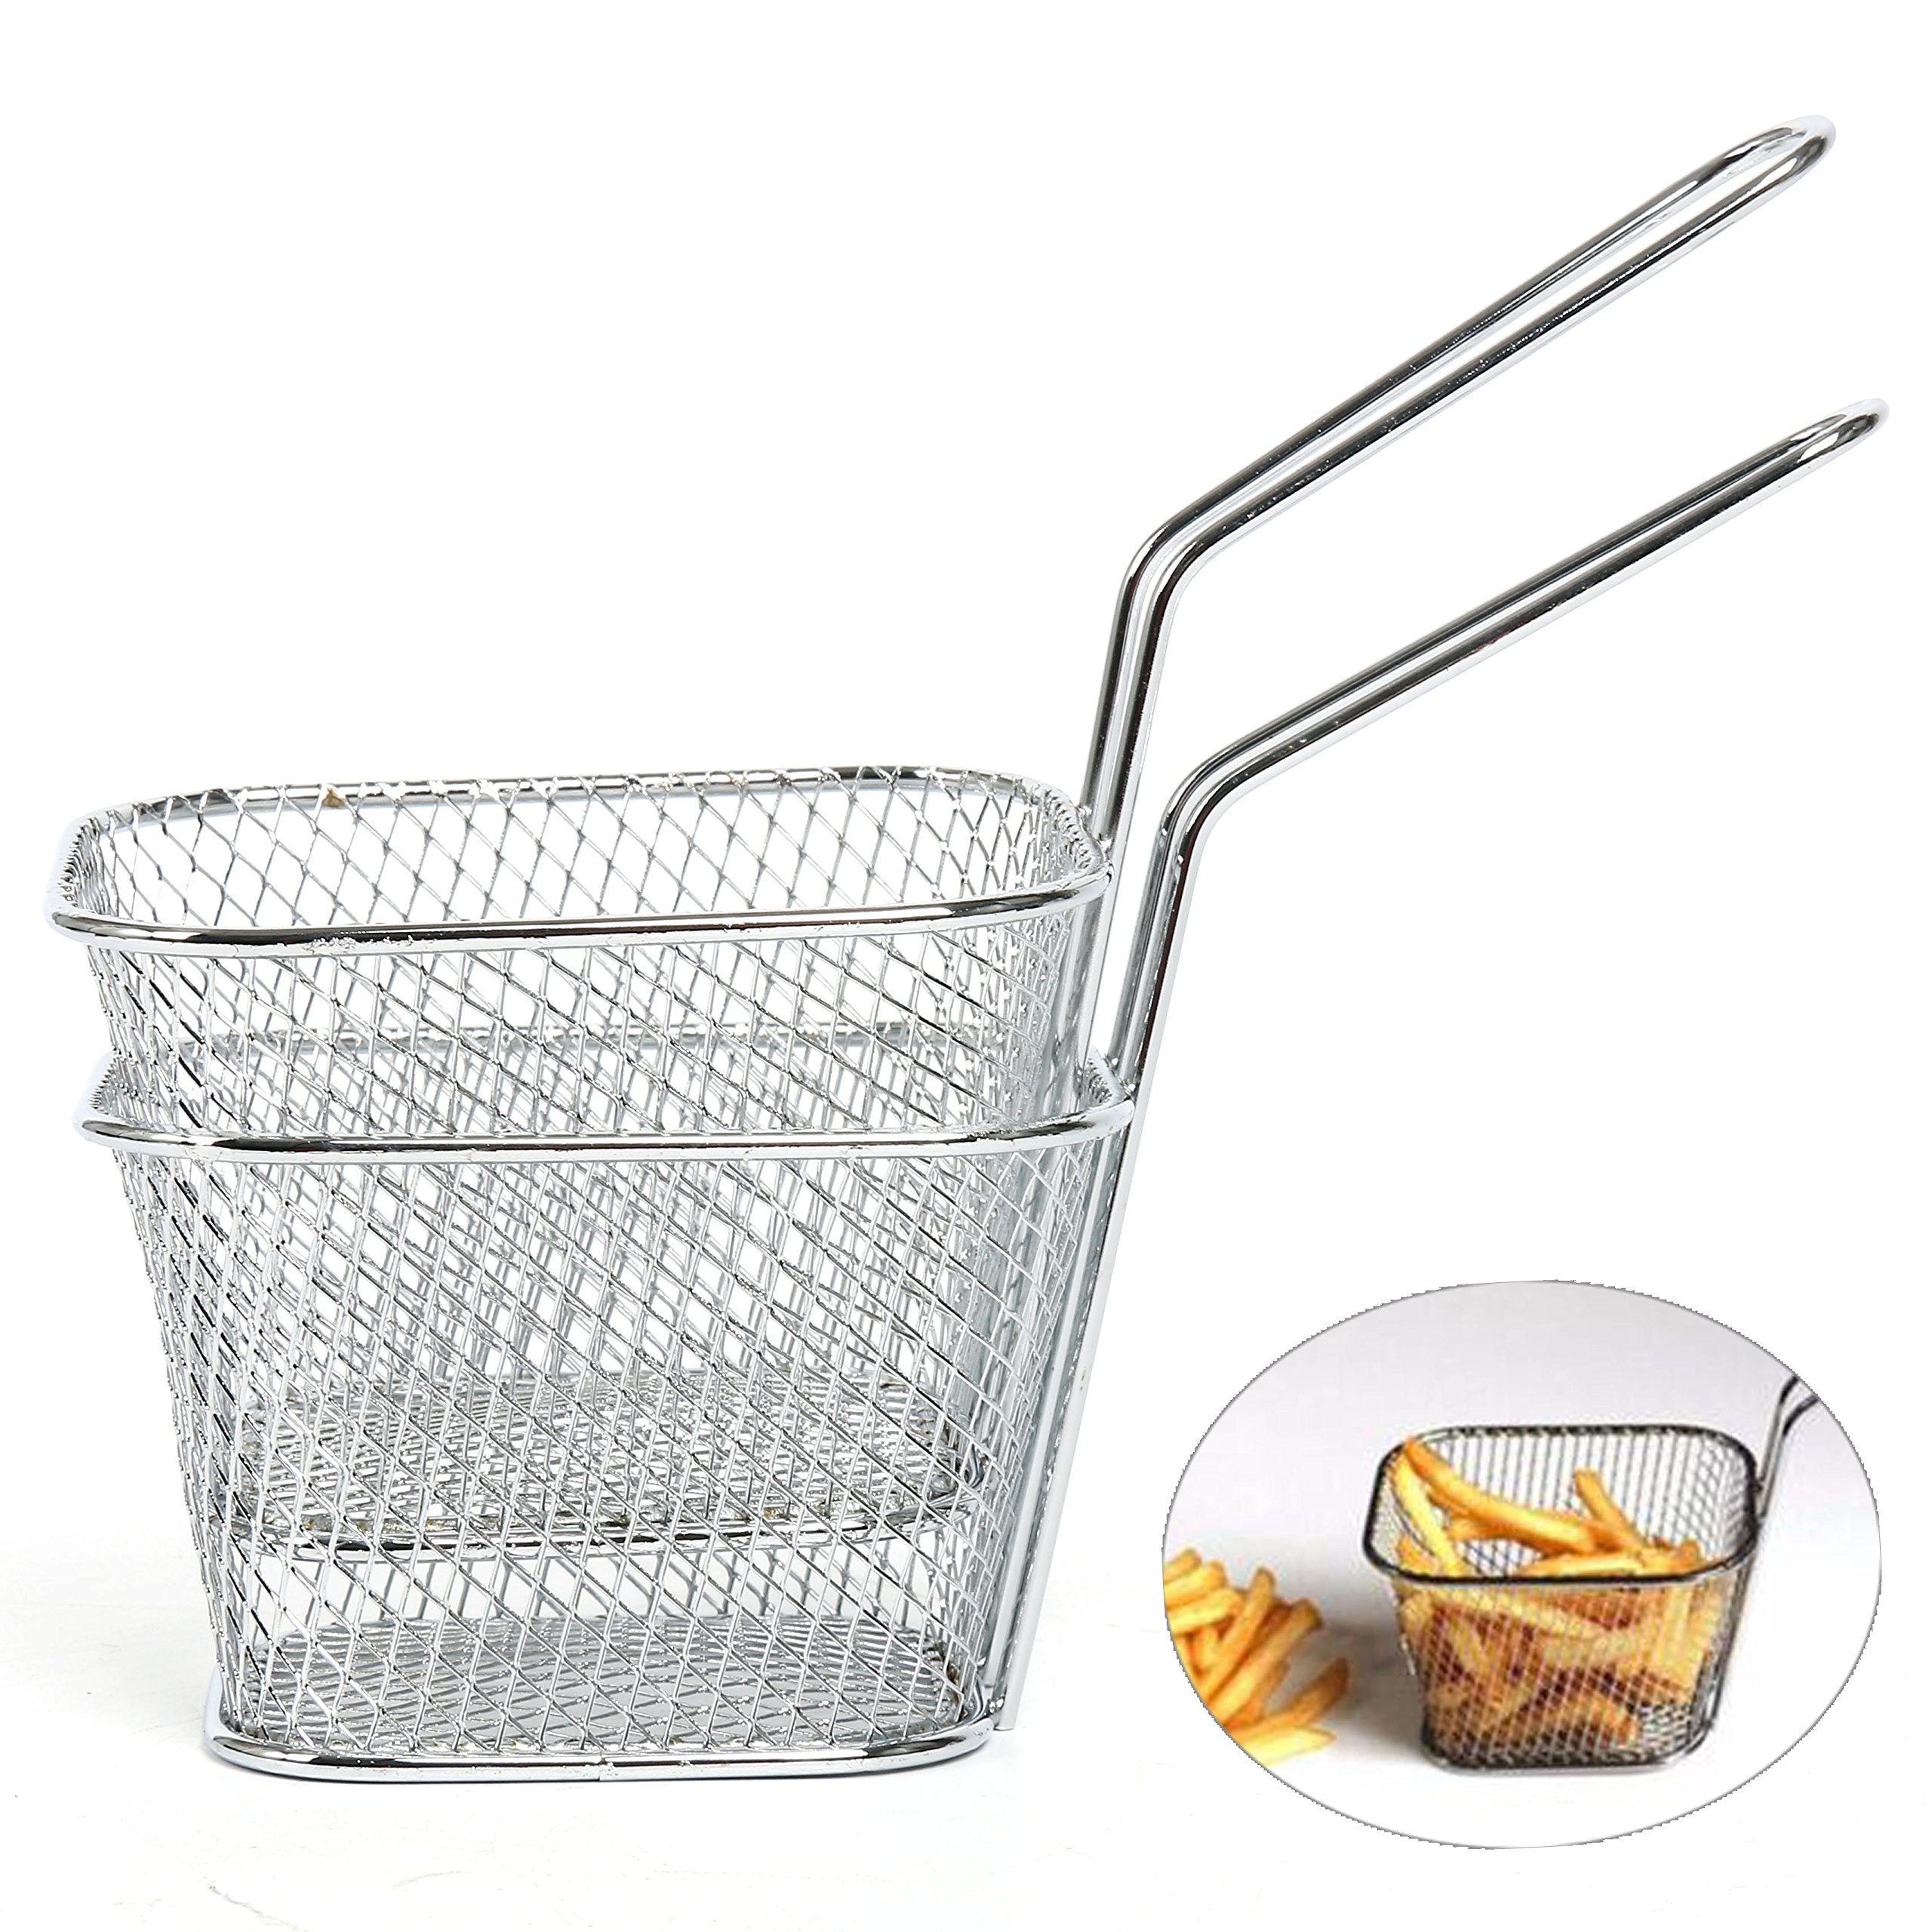 Yaekoo 8Pcs Mini Mesh Wire French Fry Chips Baskets Net Strainer Kitchen Cooking Tools by Yaekoo (Image #4)